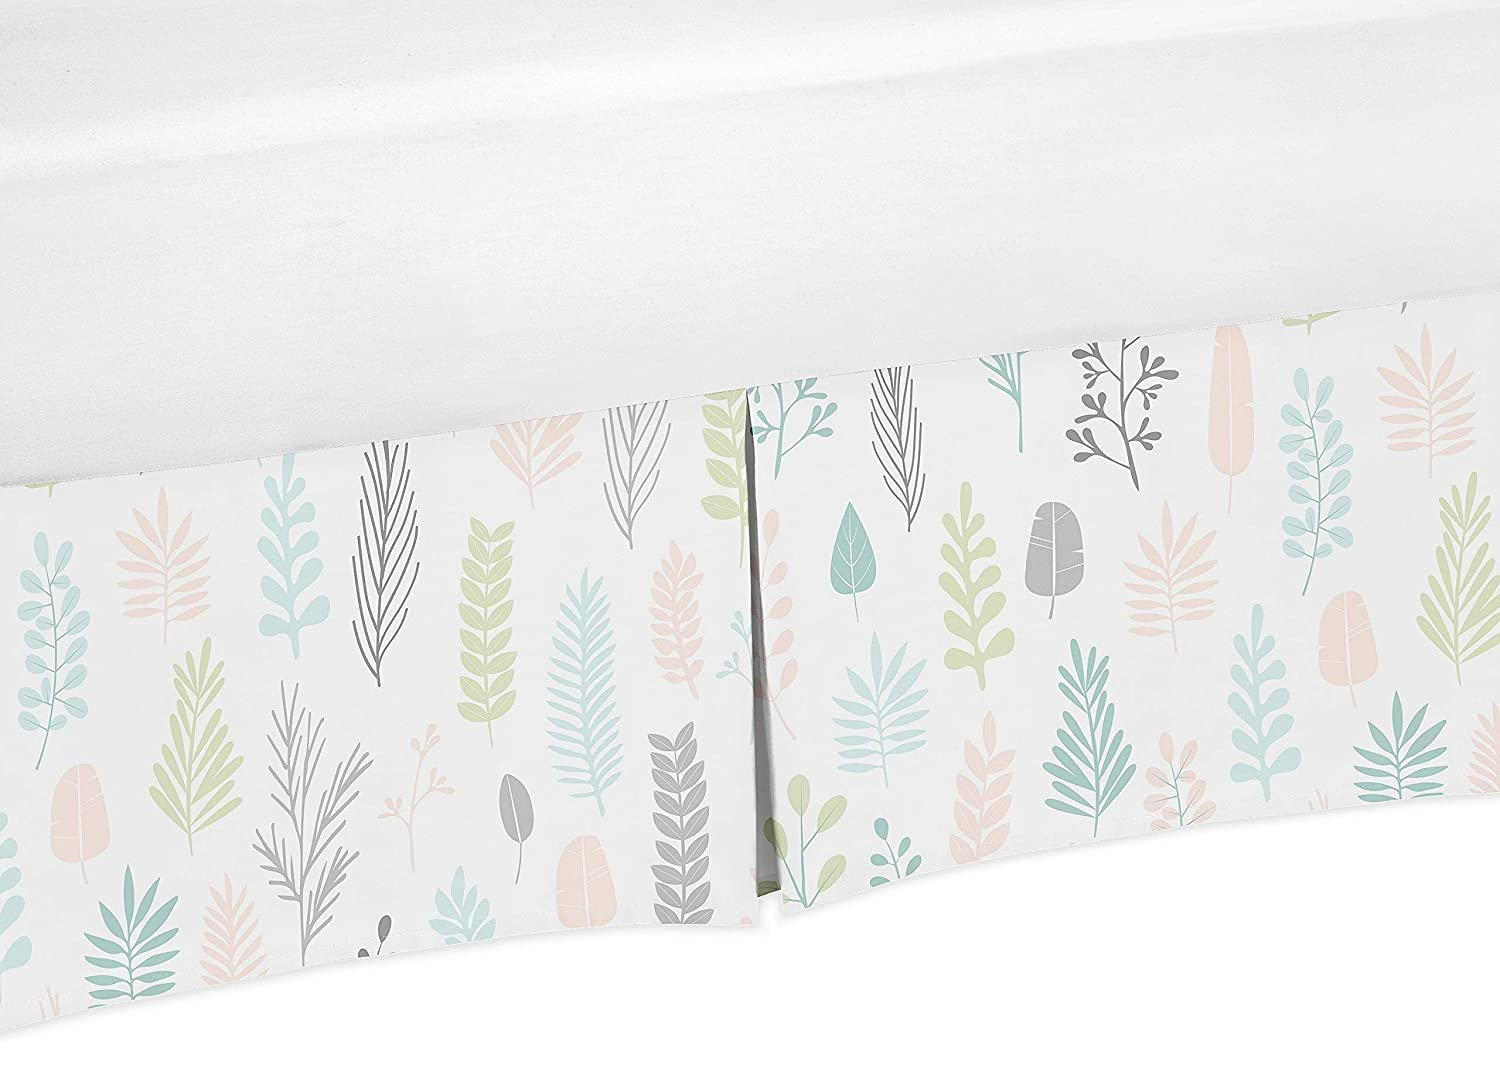 Sweet Jojo Designs Pink and Grey Tropical Leaf Girl Pleated Baby Nursery Crib Bed Skirt Dust Ruffle - Blush, Turquoise, Gray and Green Botanical Rainforest Jungle Sloth Collection